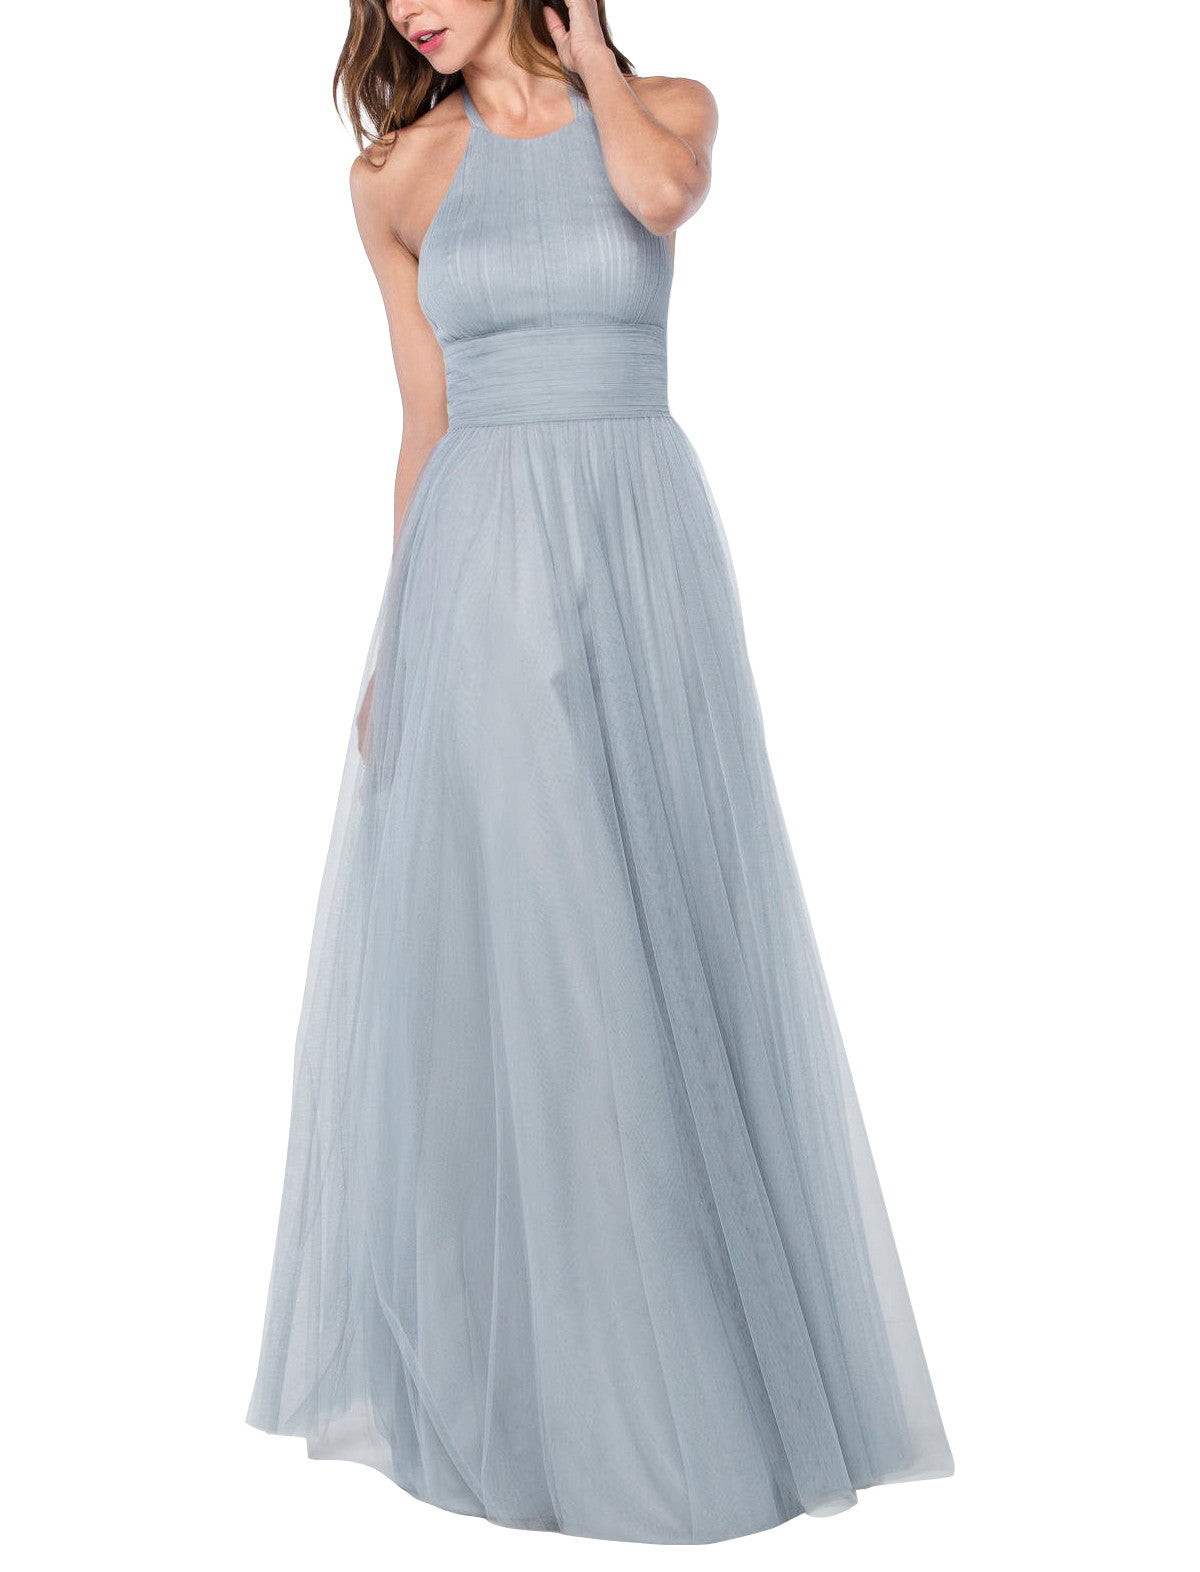 Watters Abigale Bridesmaid Dress Bridesmaid Dress | Brideside